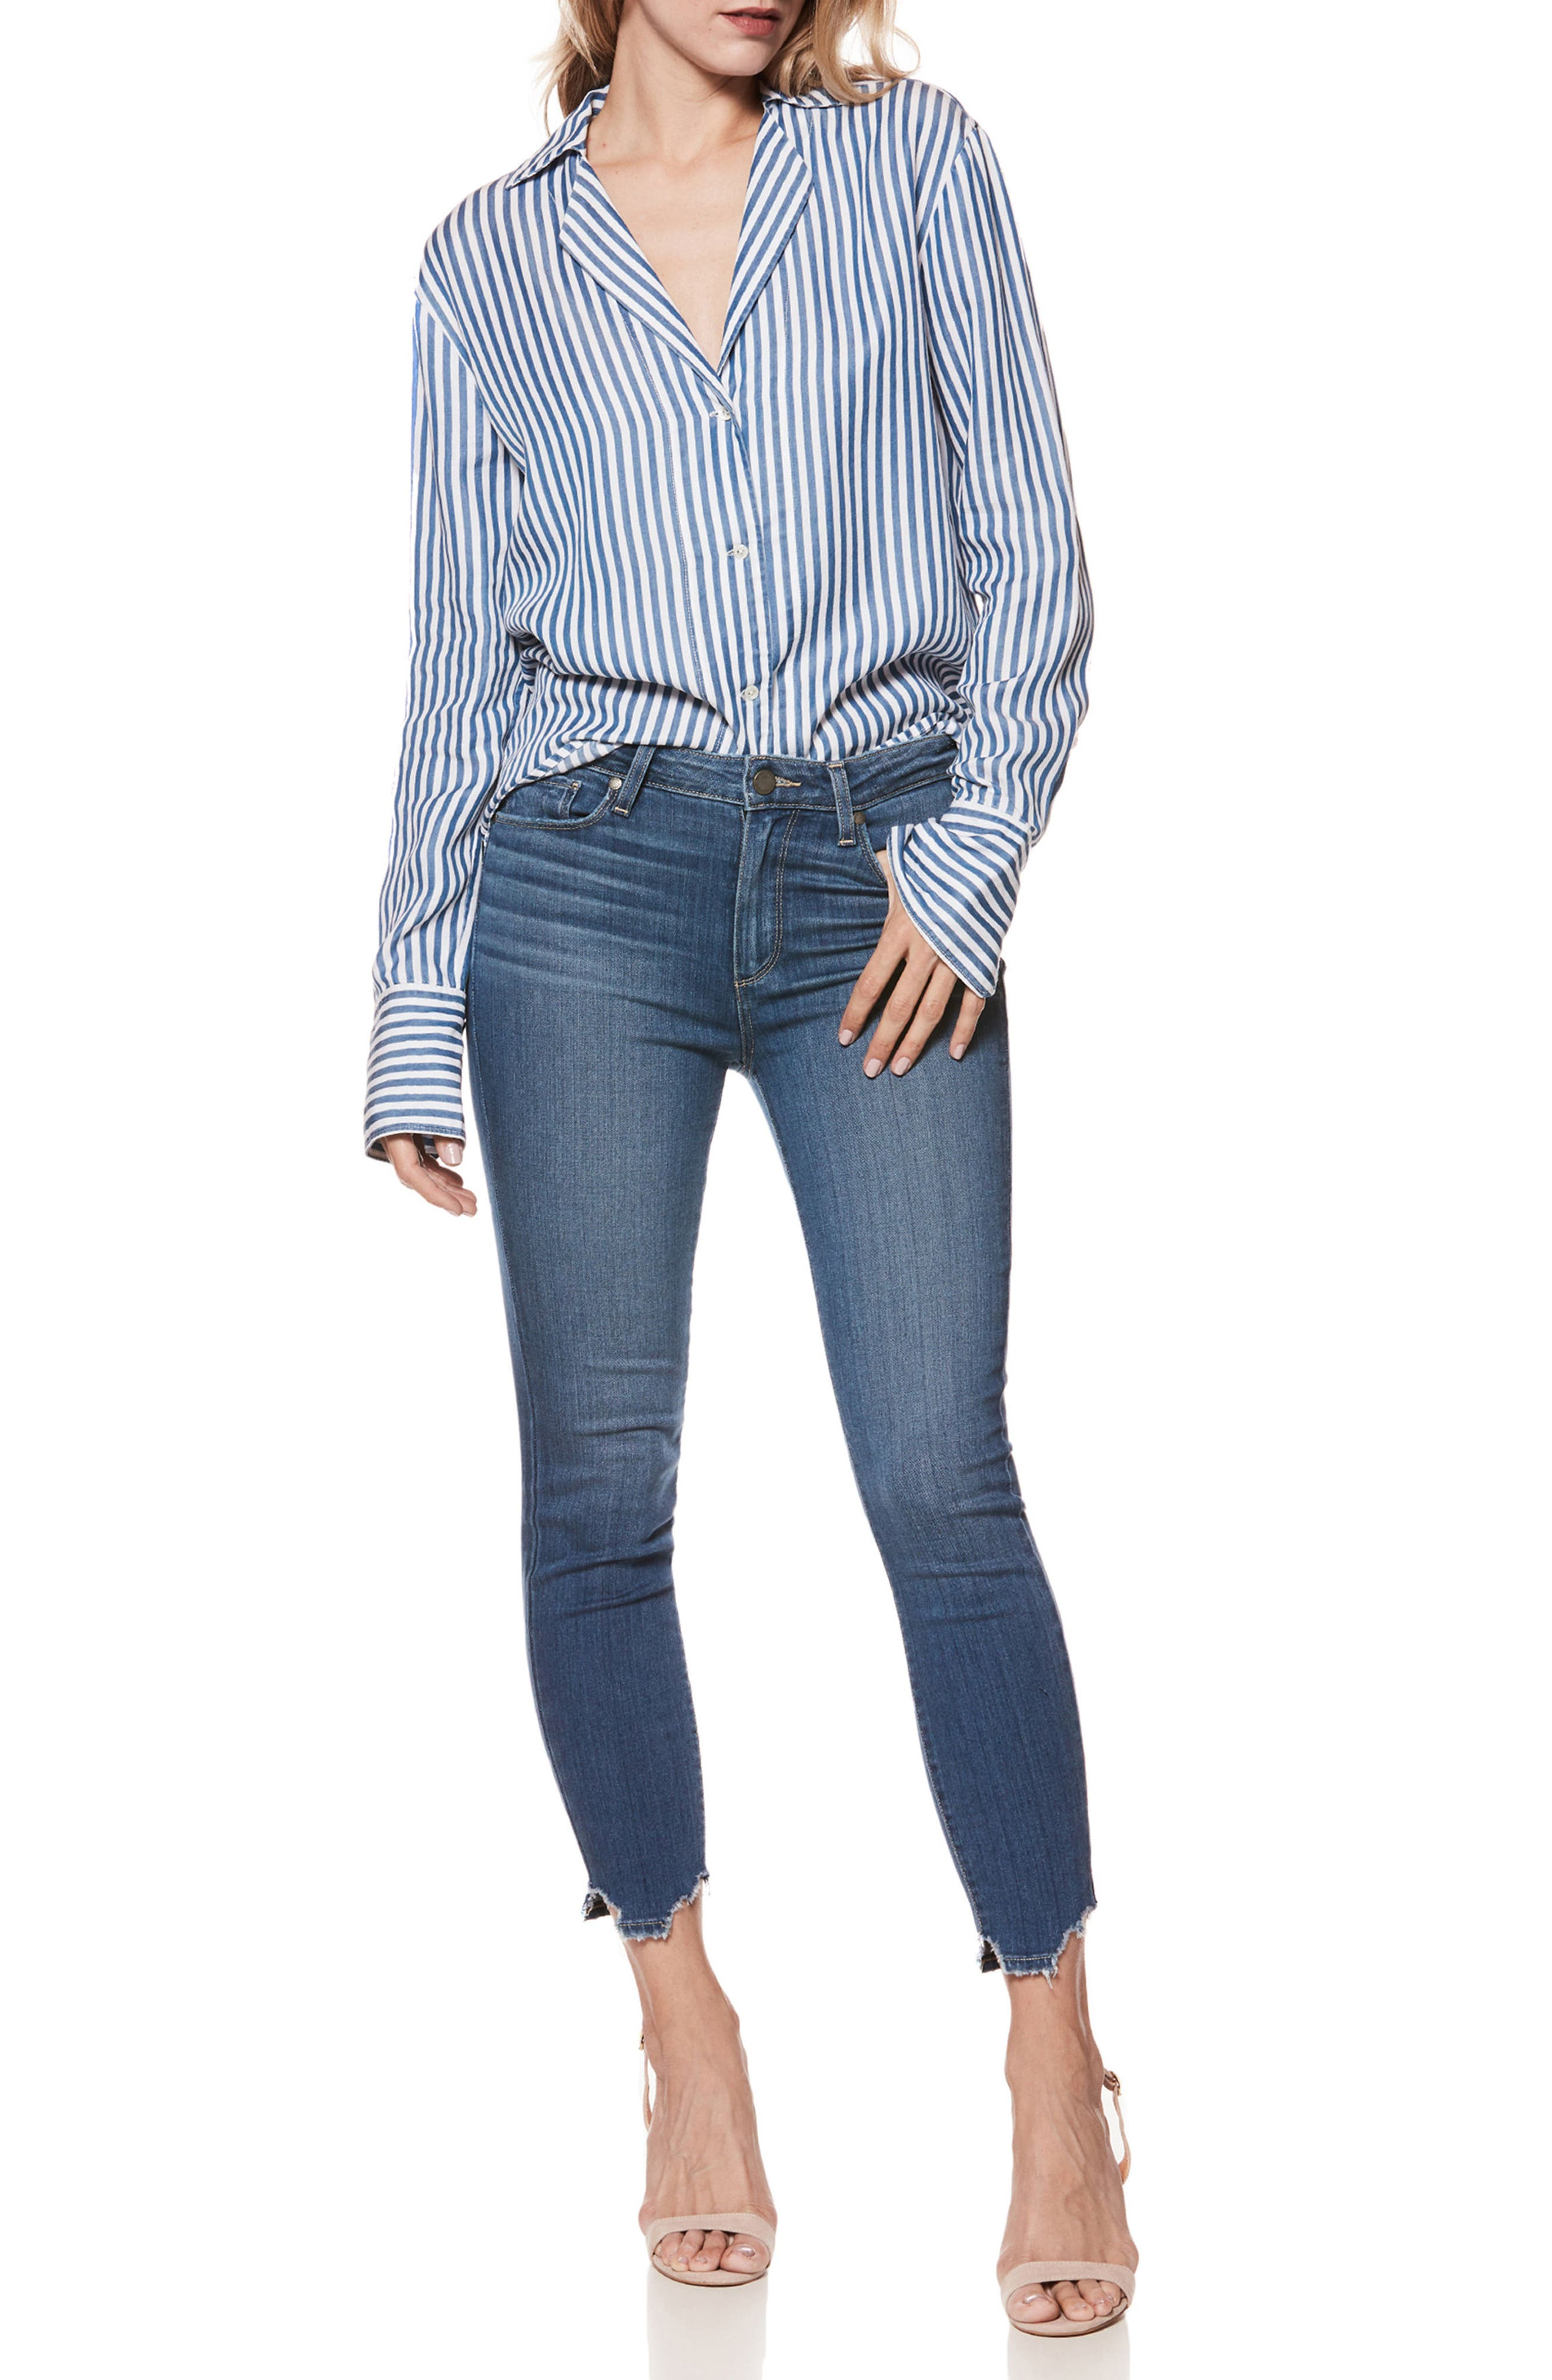 Transcend - Hoxton High Waist Crop Skinny Jeans,                             Alternate thumbnail 2, color,                             Lived In Henderson